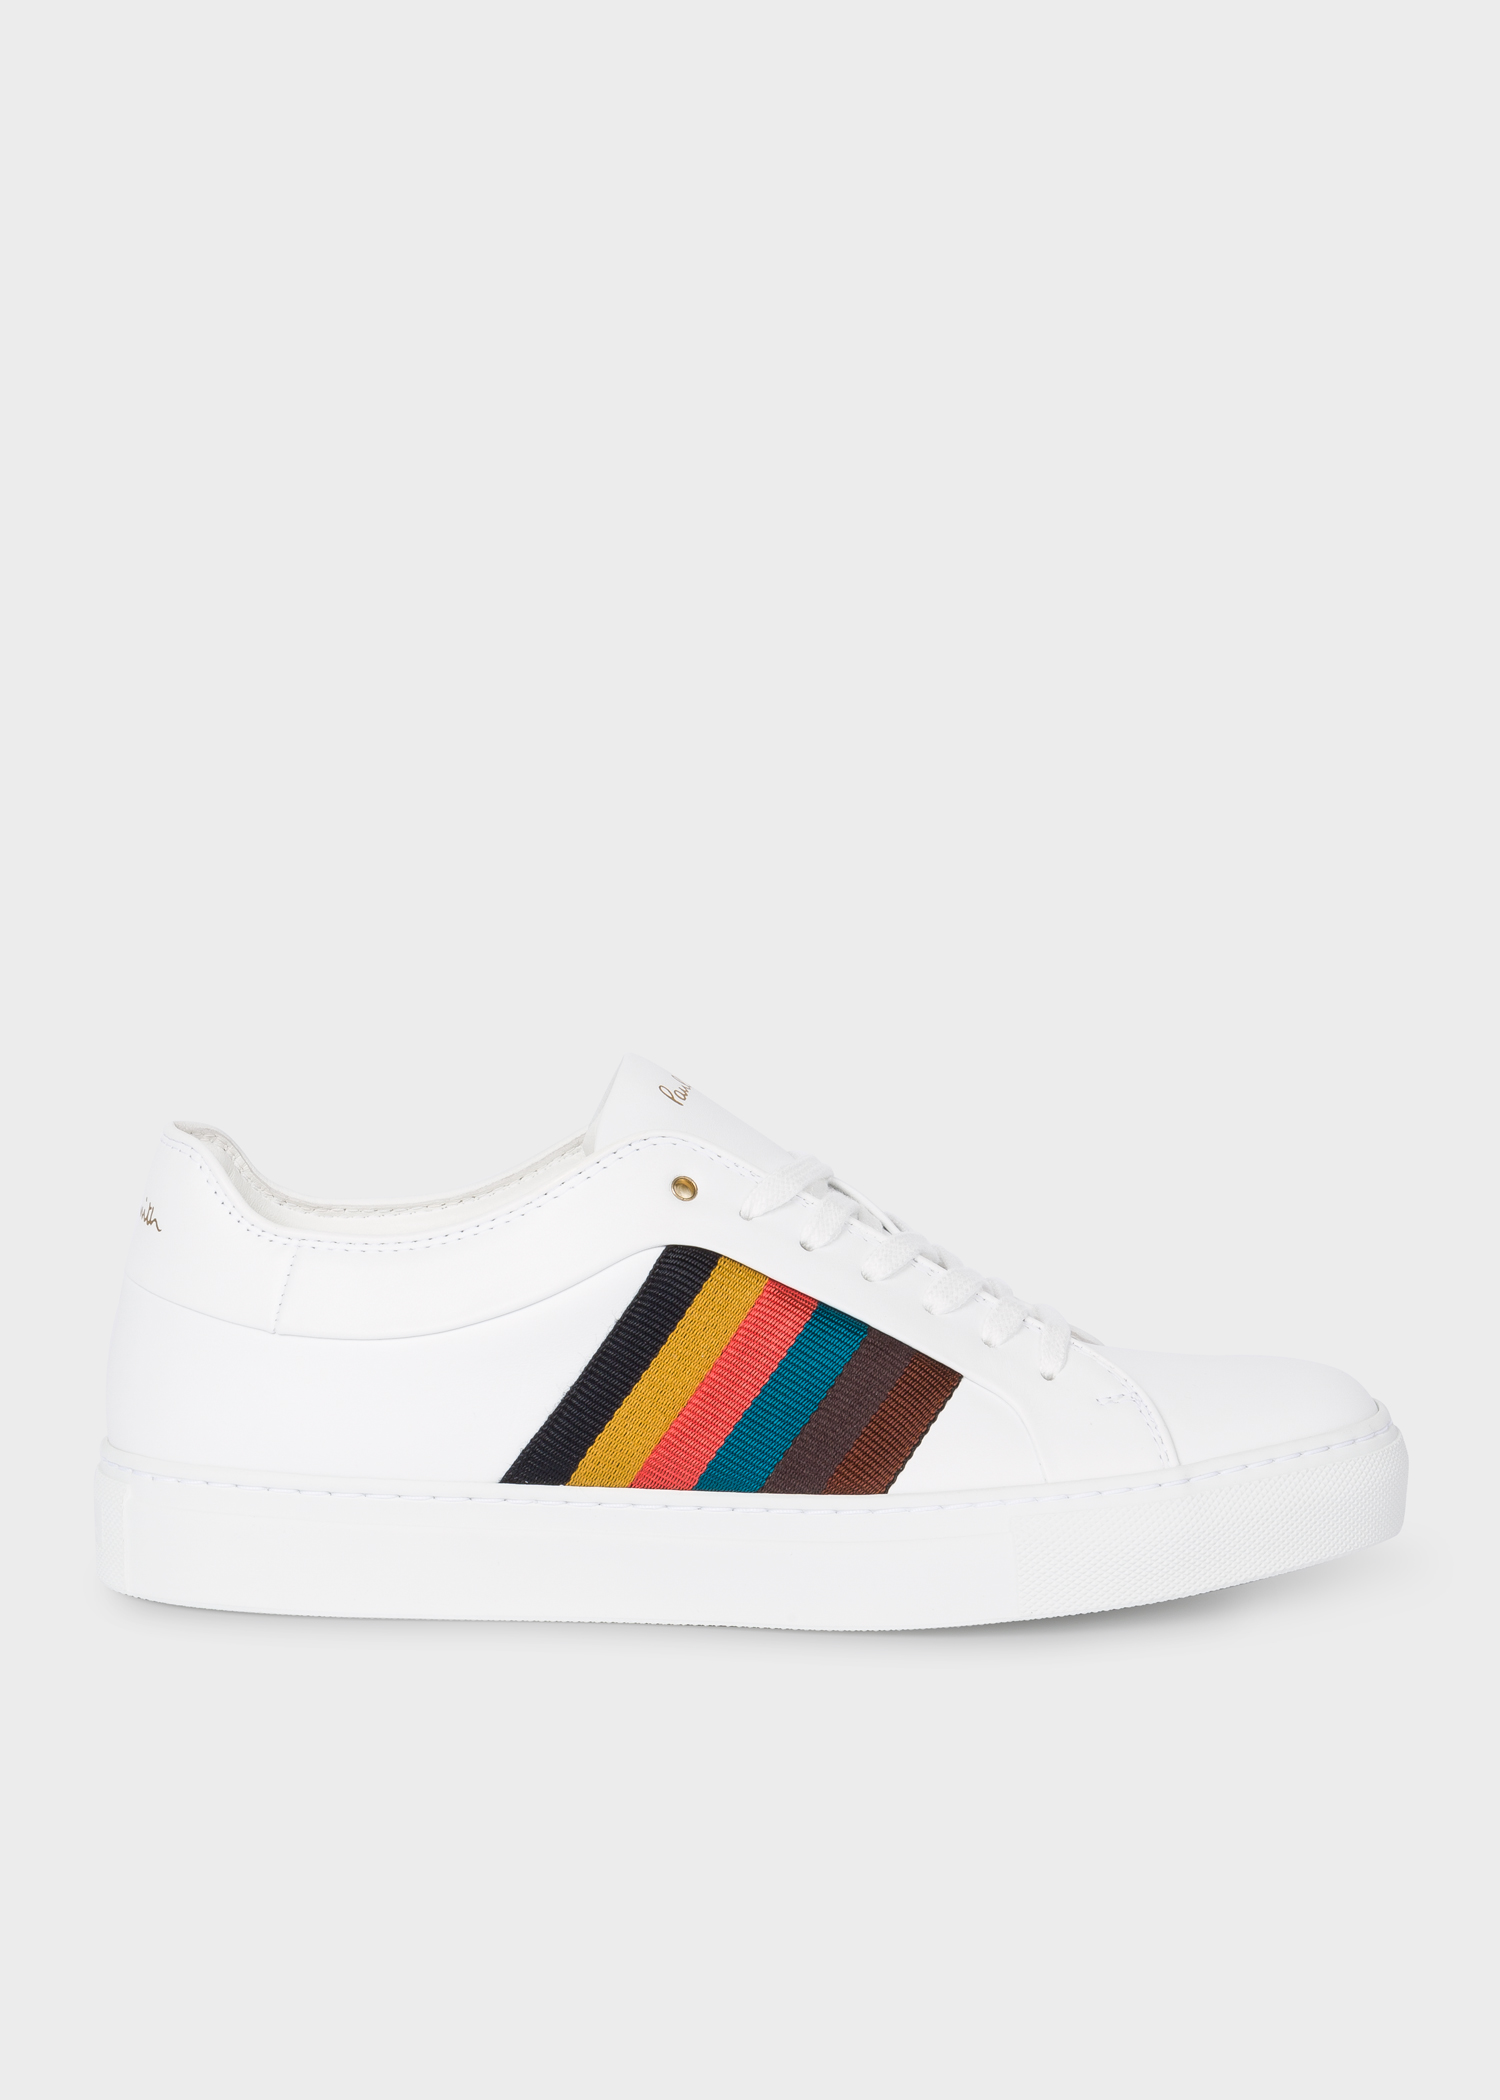 most desirable fashion 2018 sneakers marketable Men's White Calf Leather 'Ivo' Trainers With Bright Stripe Panels